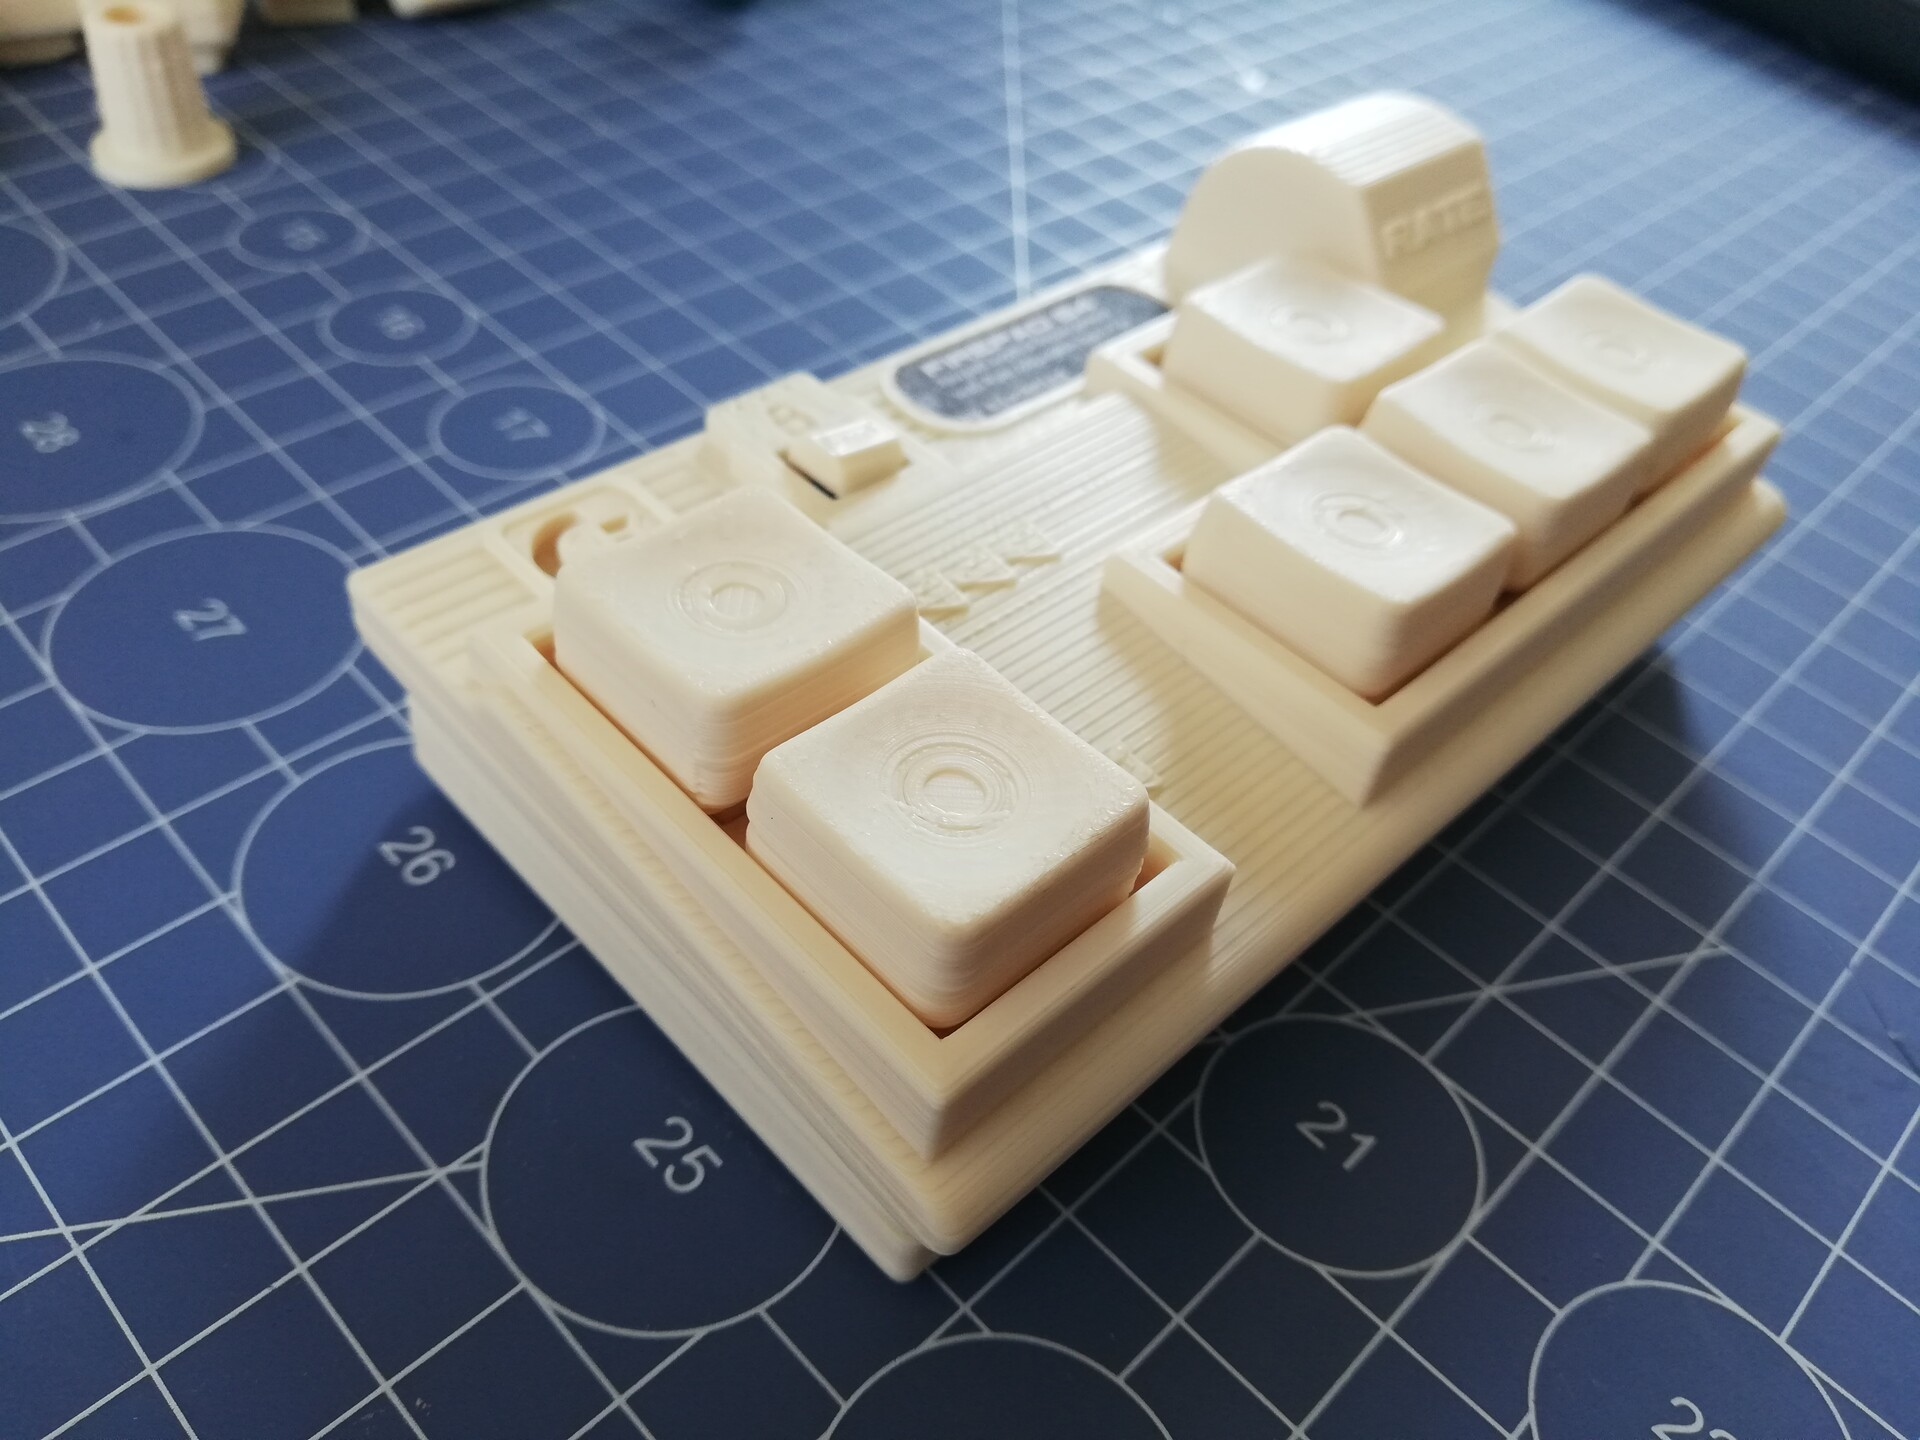 Photo of the 3d printed prototype